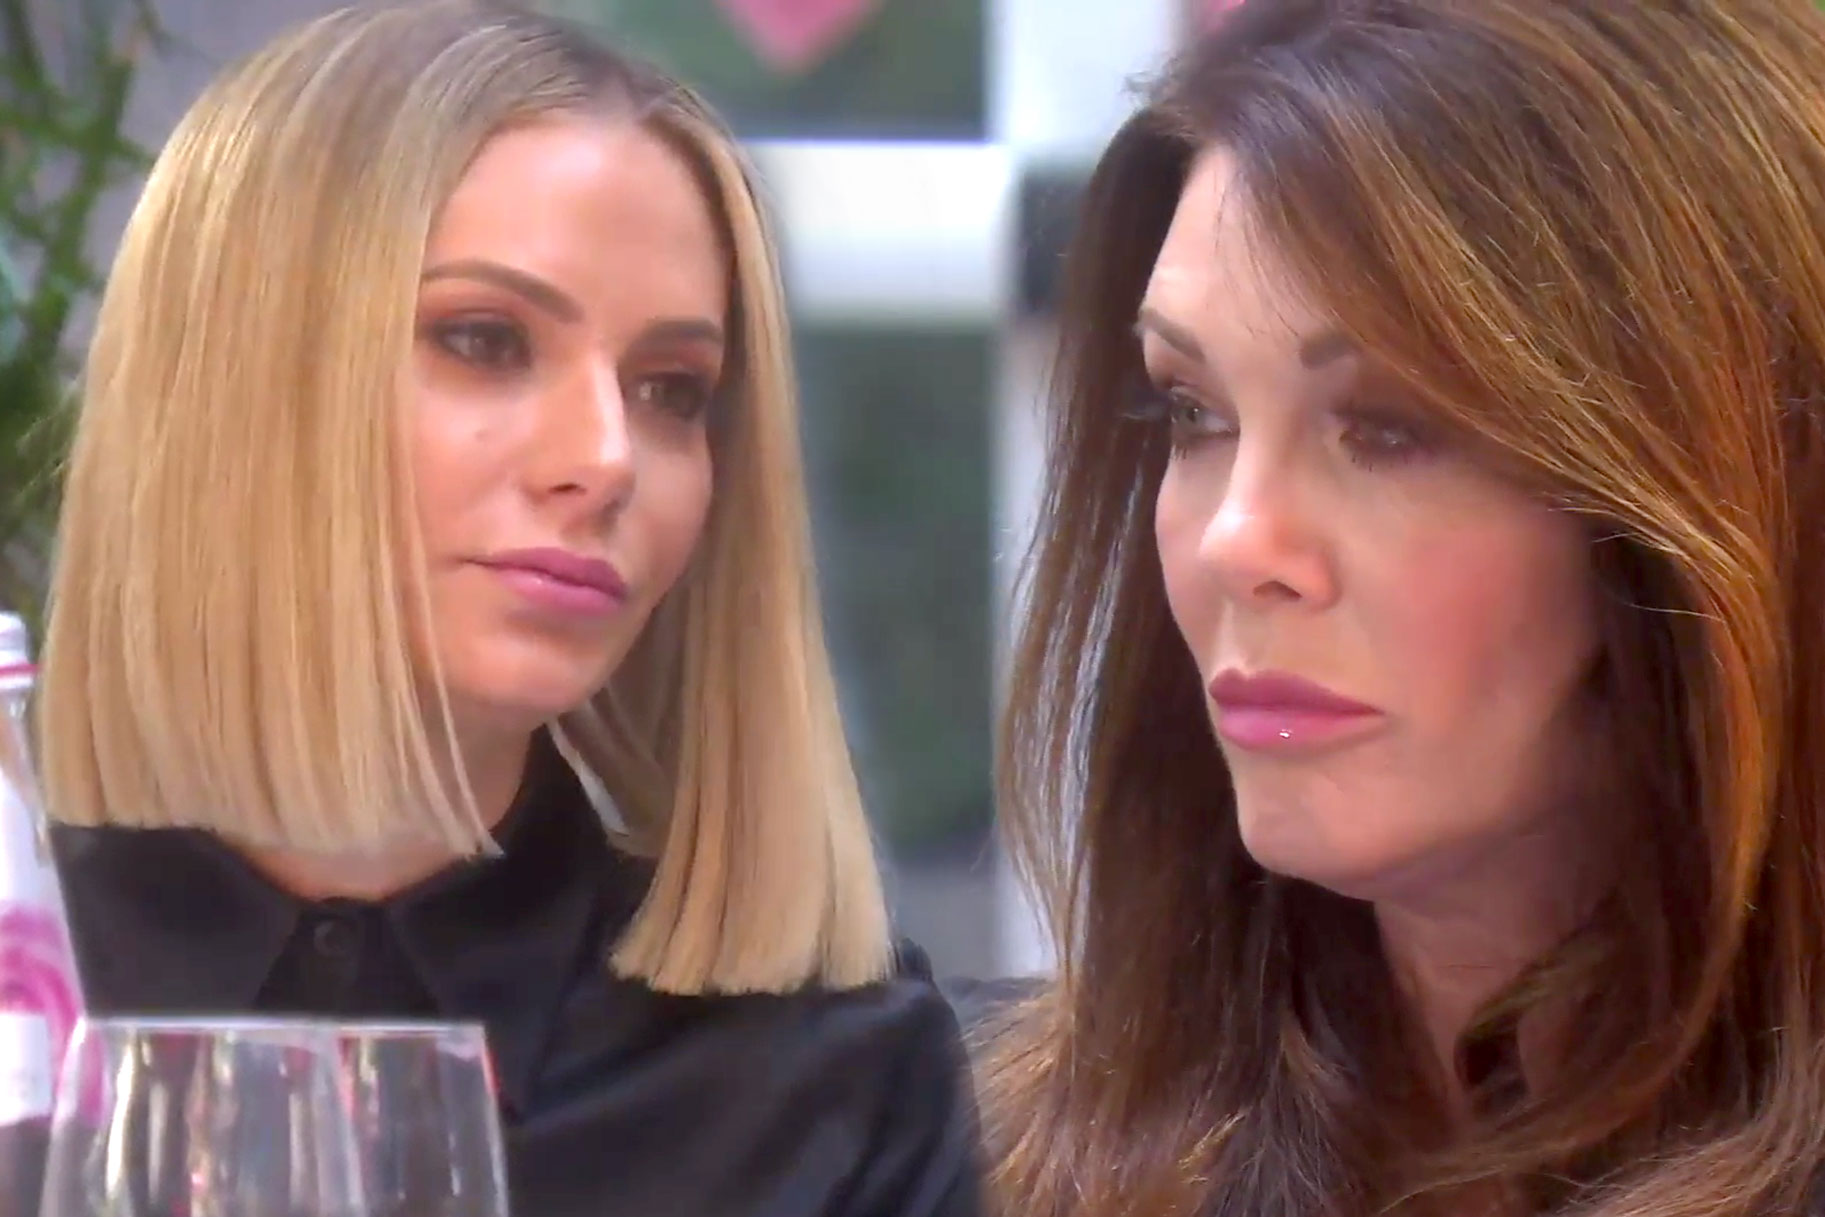 Lisa Vanderpump and Dorit Kemsley in The Real Housewives of Beverly Hills Season 9